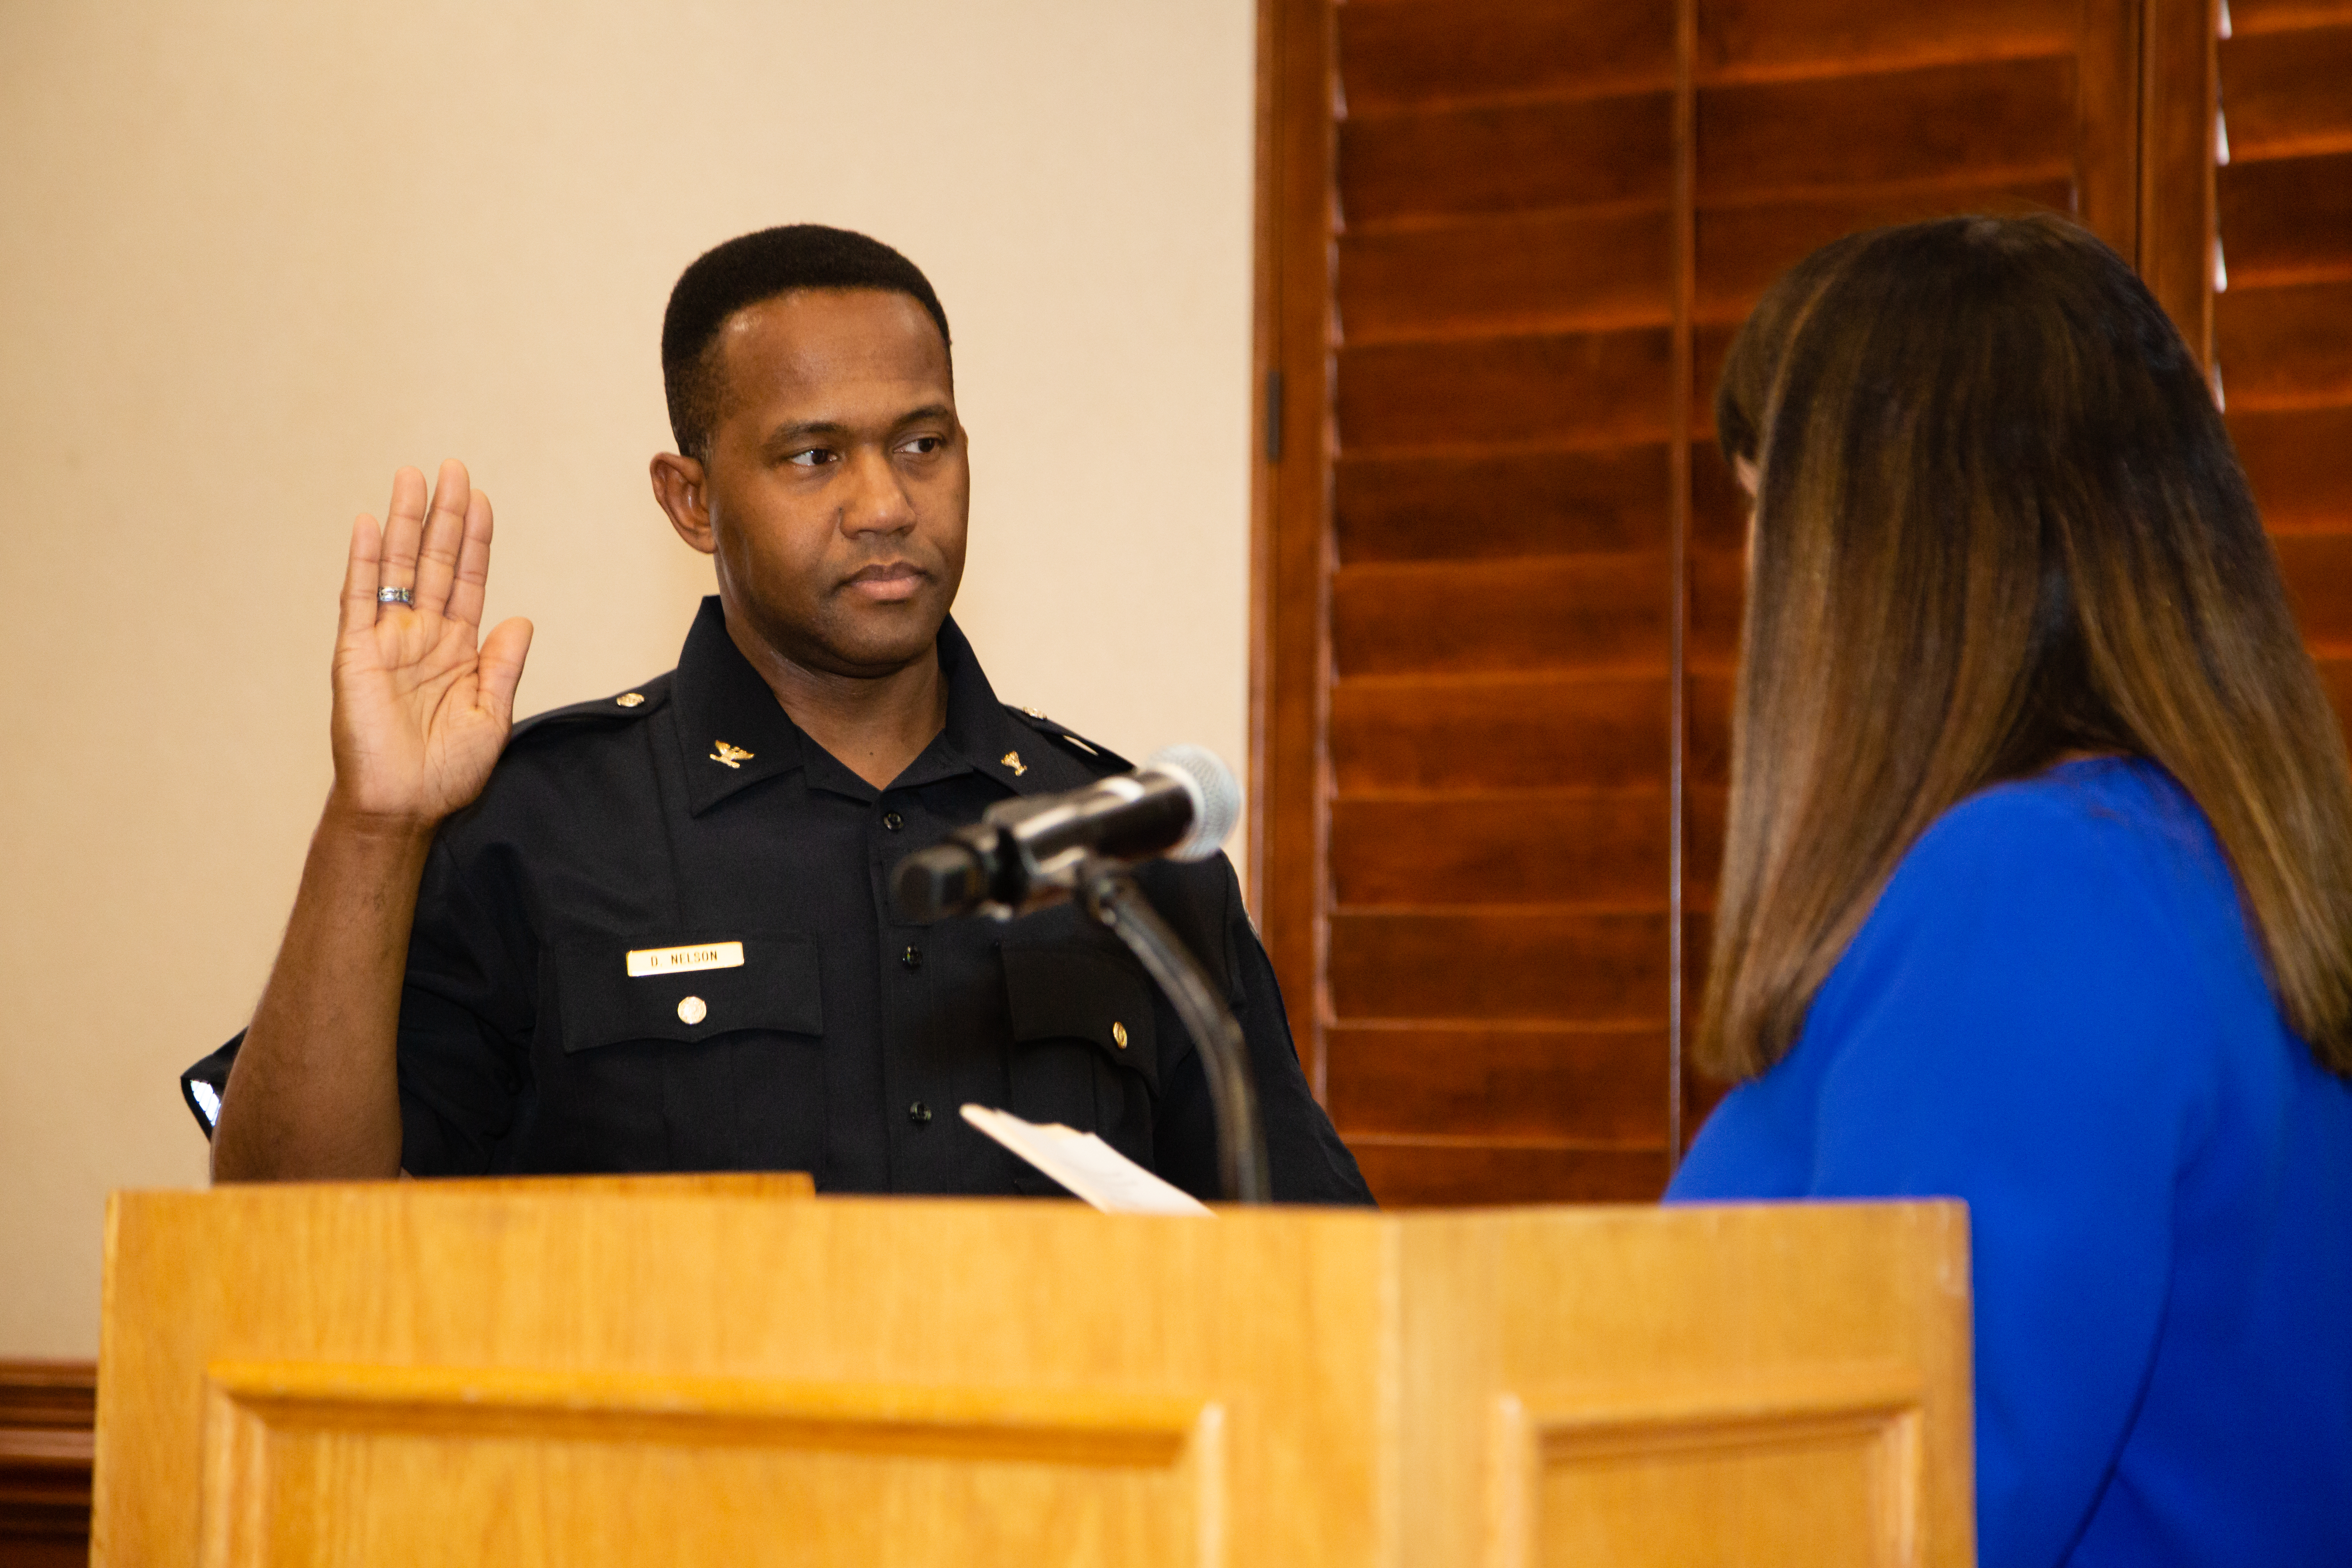 Chief Nelson being sworn in by President Burger.